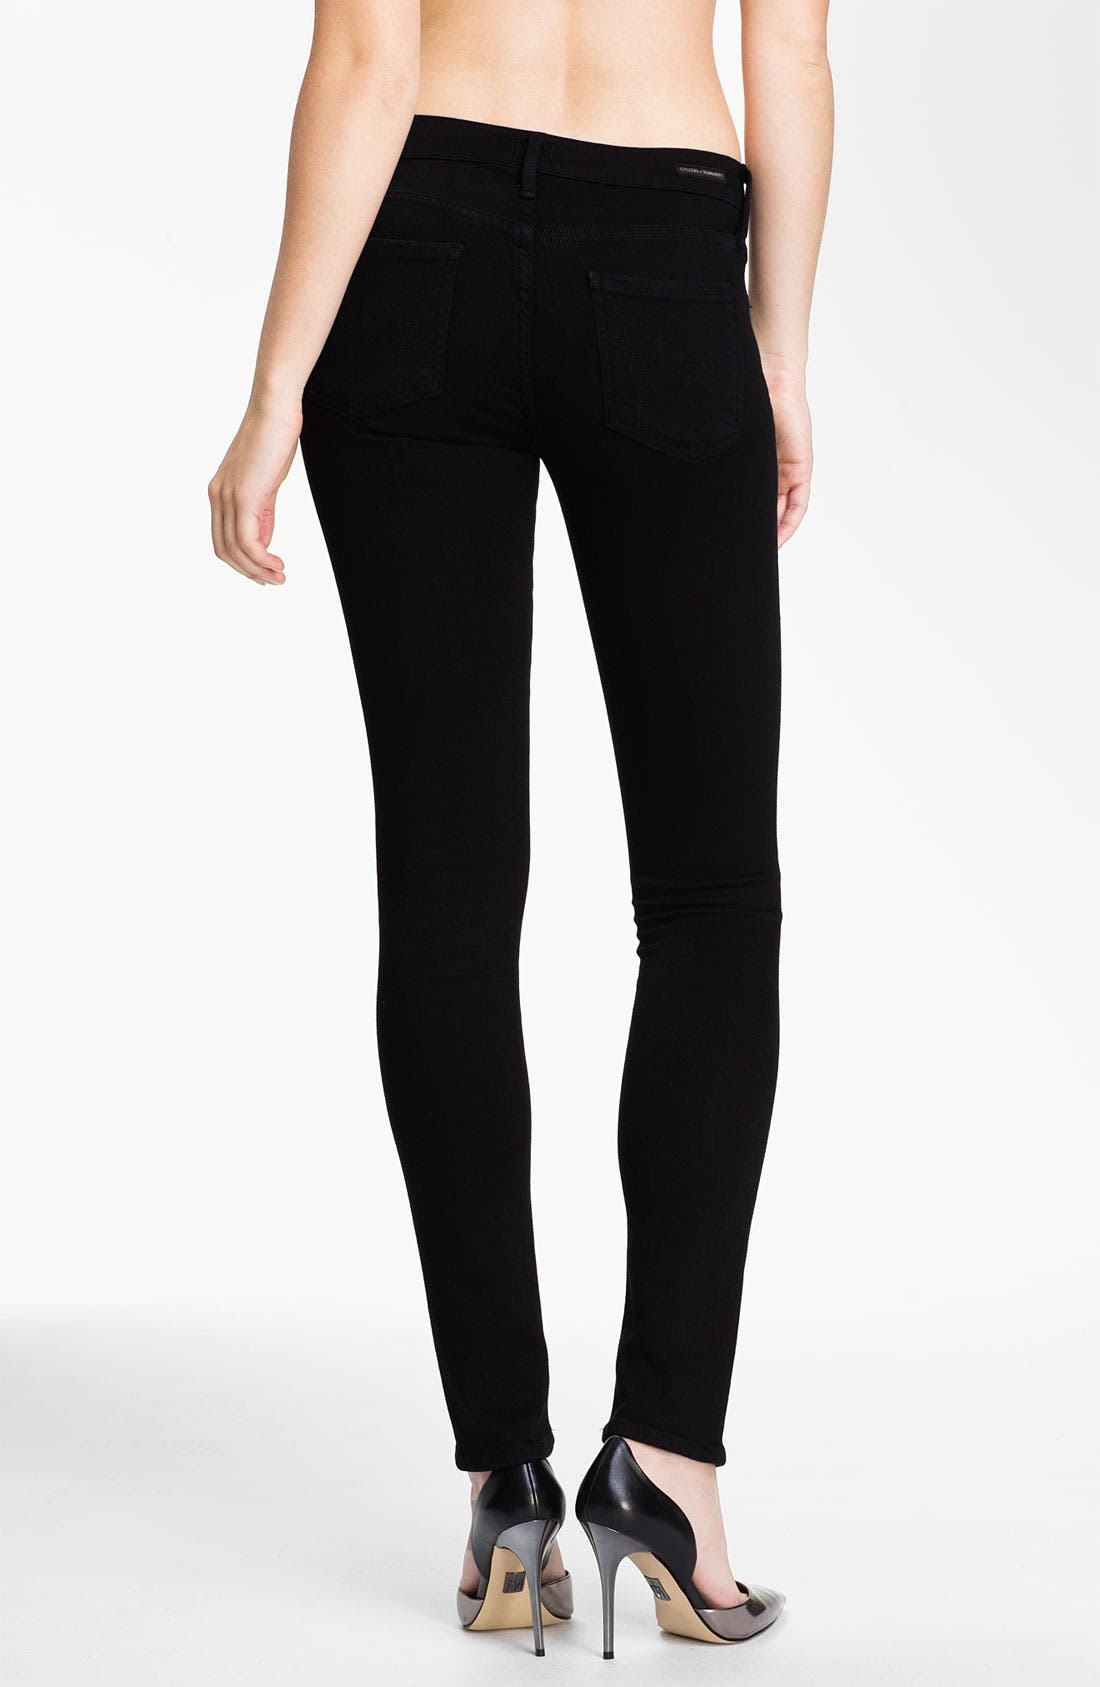 Skinny Stretch Leggings,                             Alternate thumbnail 2, color,                             010